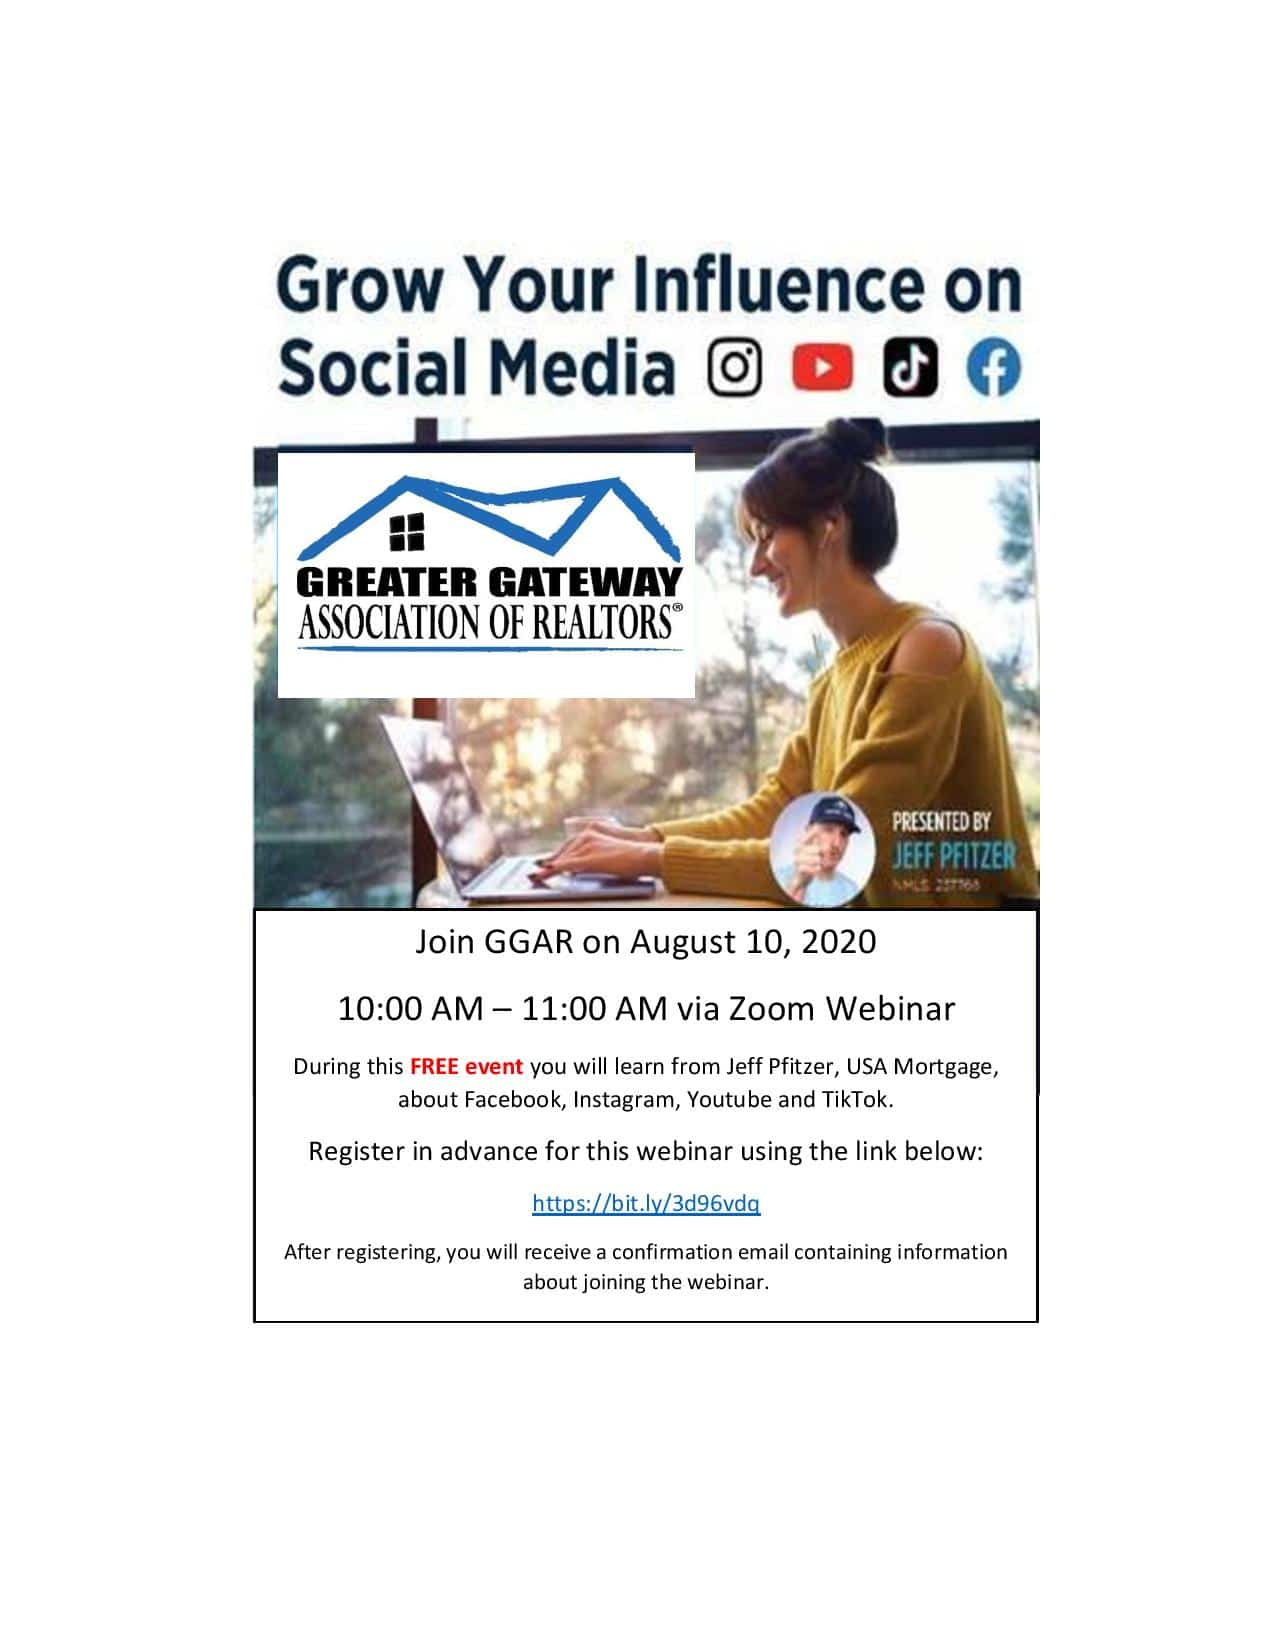 Grow Your Influence on Social Media